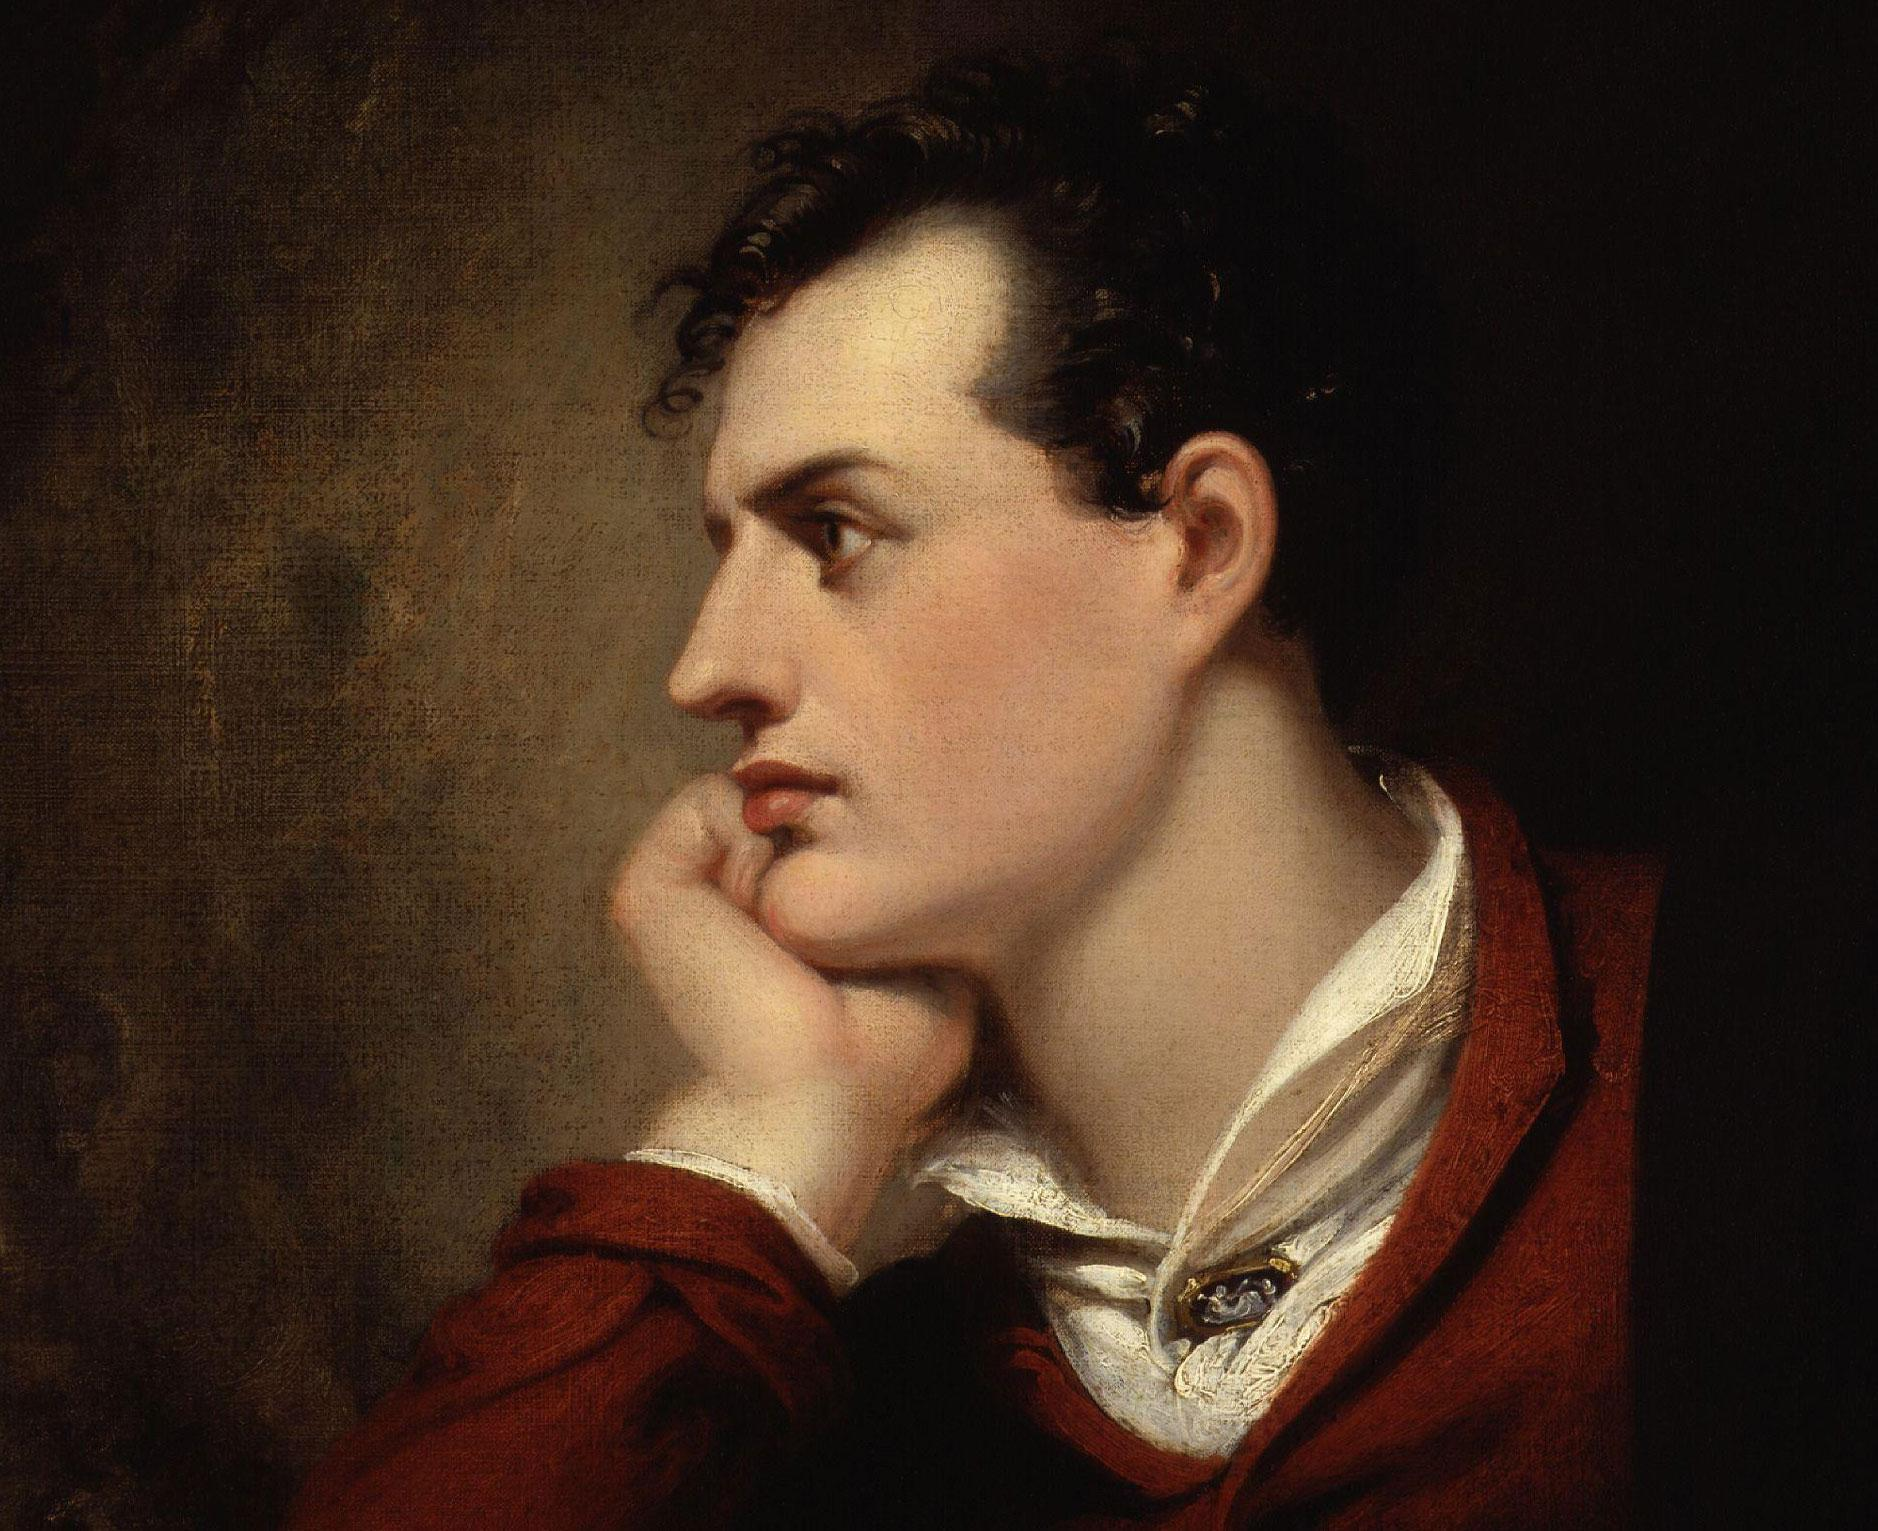 an interpretation of she walks in beauty a poem by george gordon and lord byron Lord byron (george gordon byron) lord byron's most famous poems include the curse of minerva she walks in beauty.